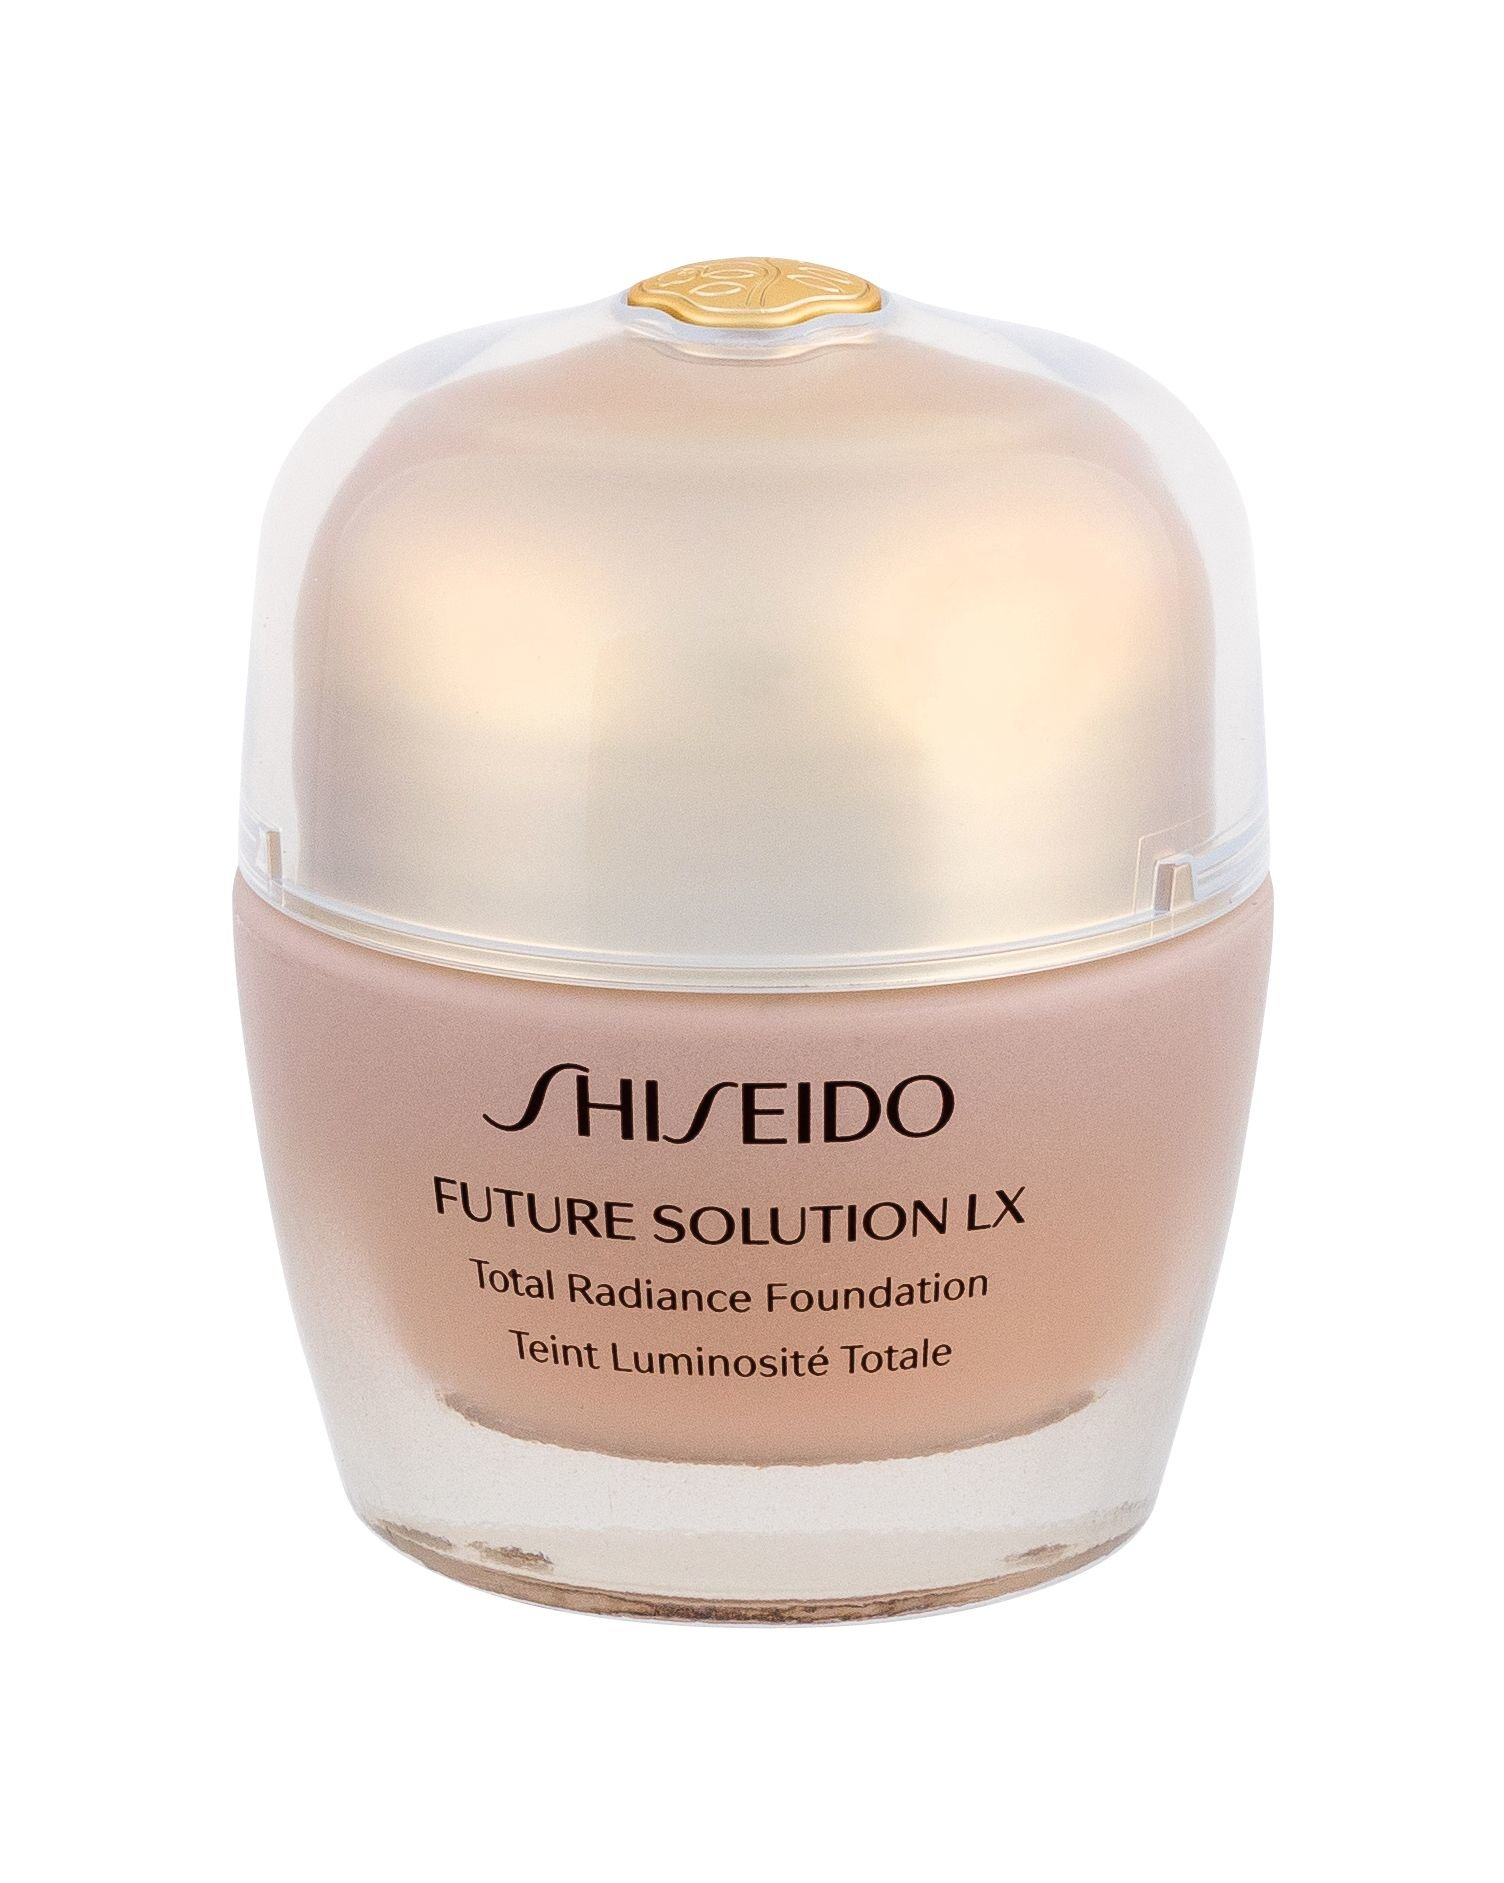 Shiseido Future Solution LX Makeup 30ml R2 Rose